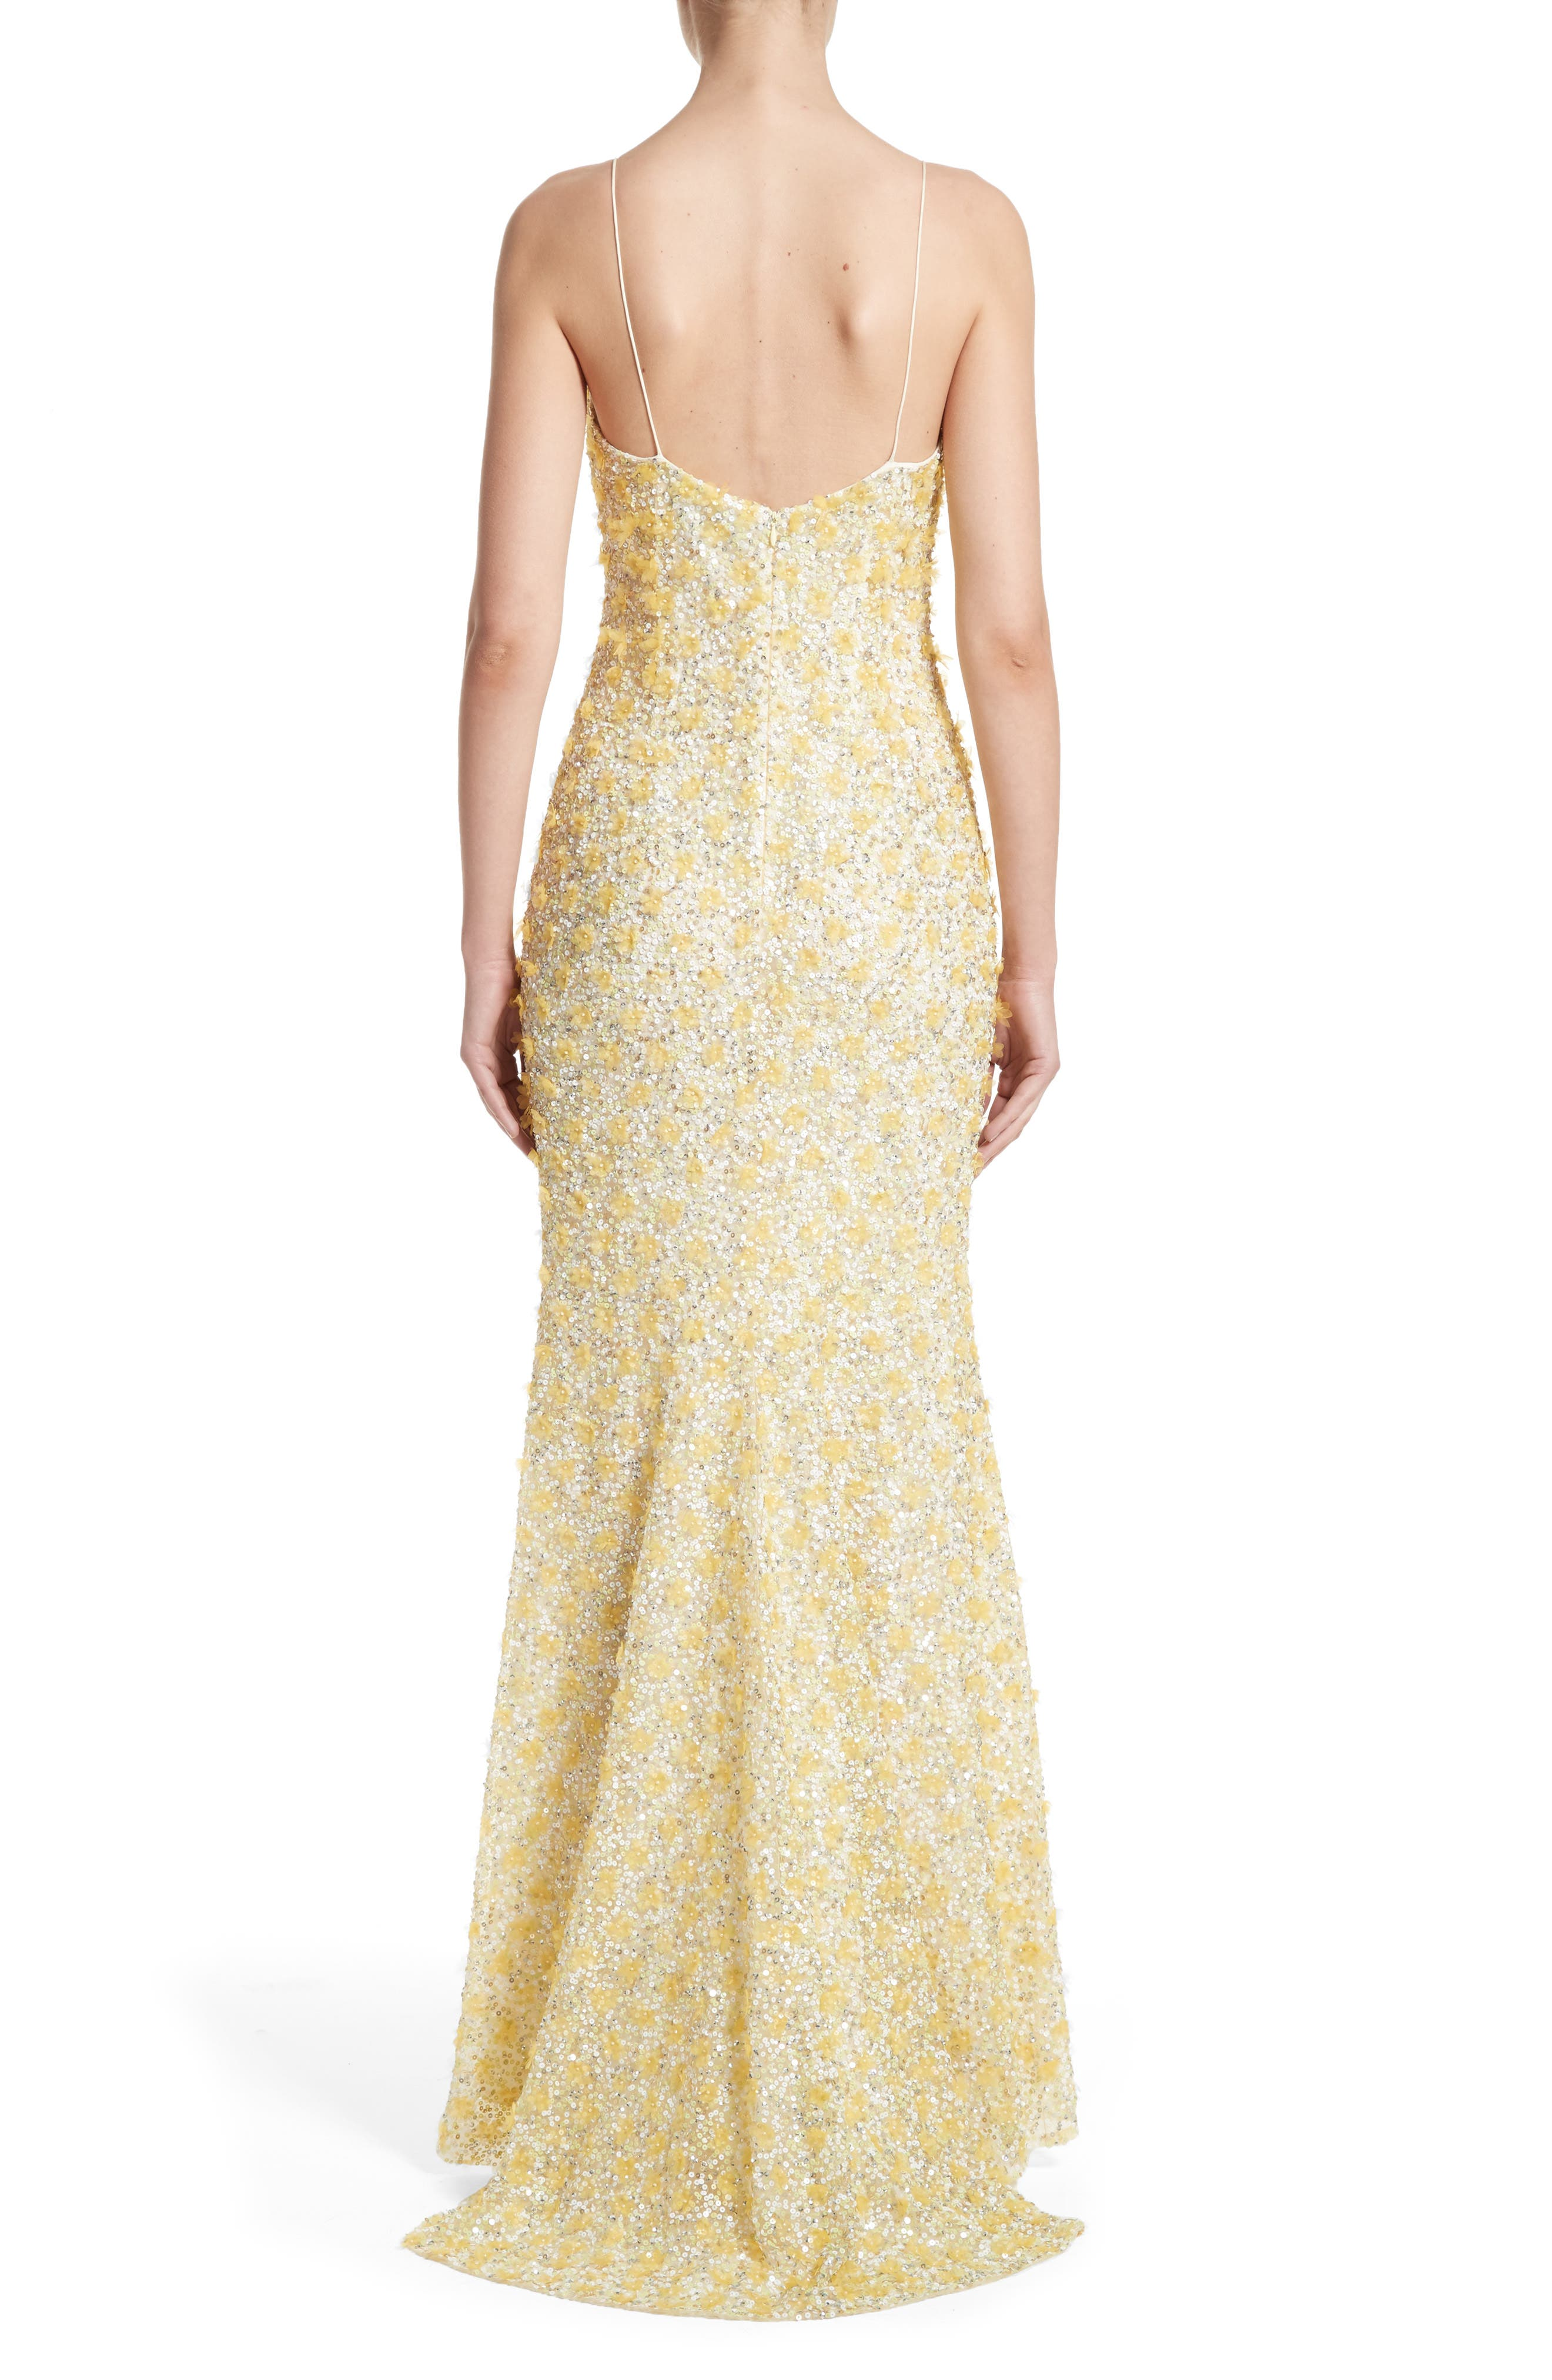 Badgley Mischka Couture Embellished Gown,                             Alternate thumbnail 2, color,                             700